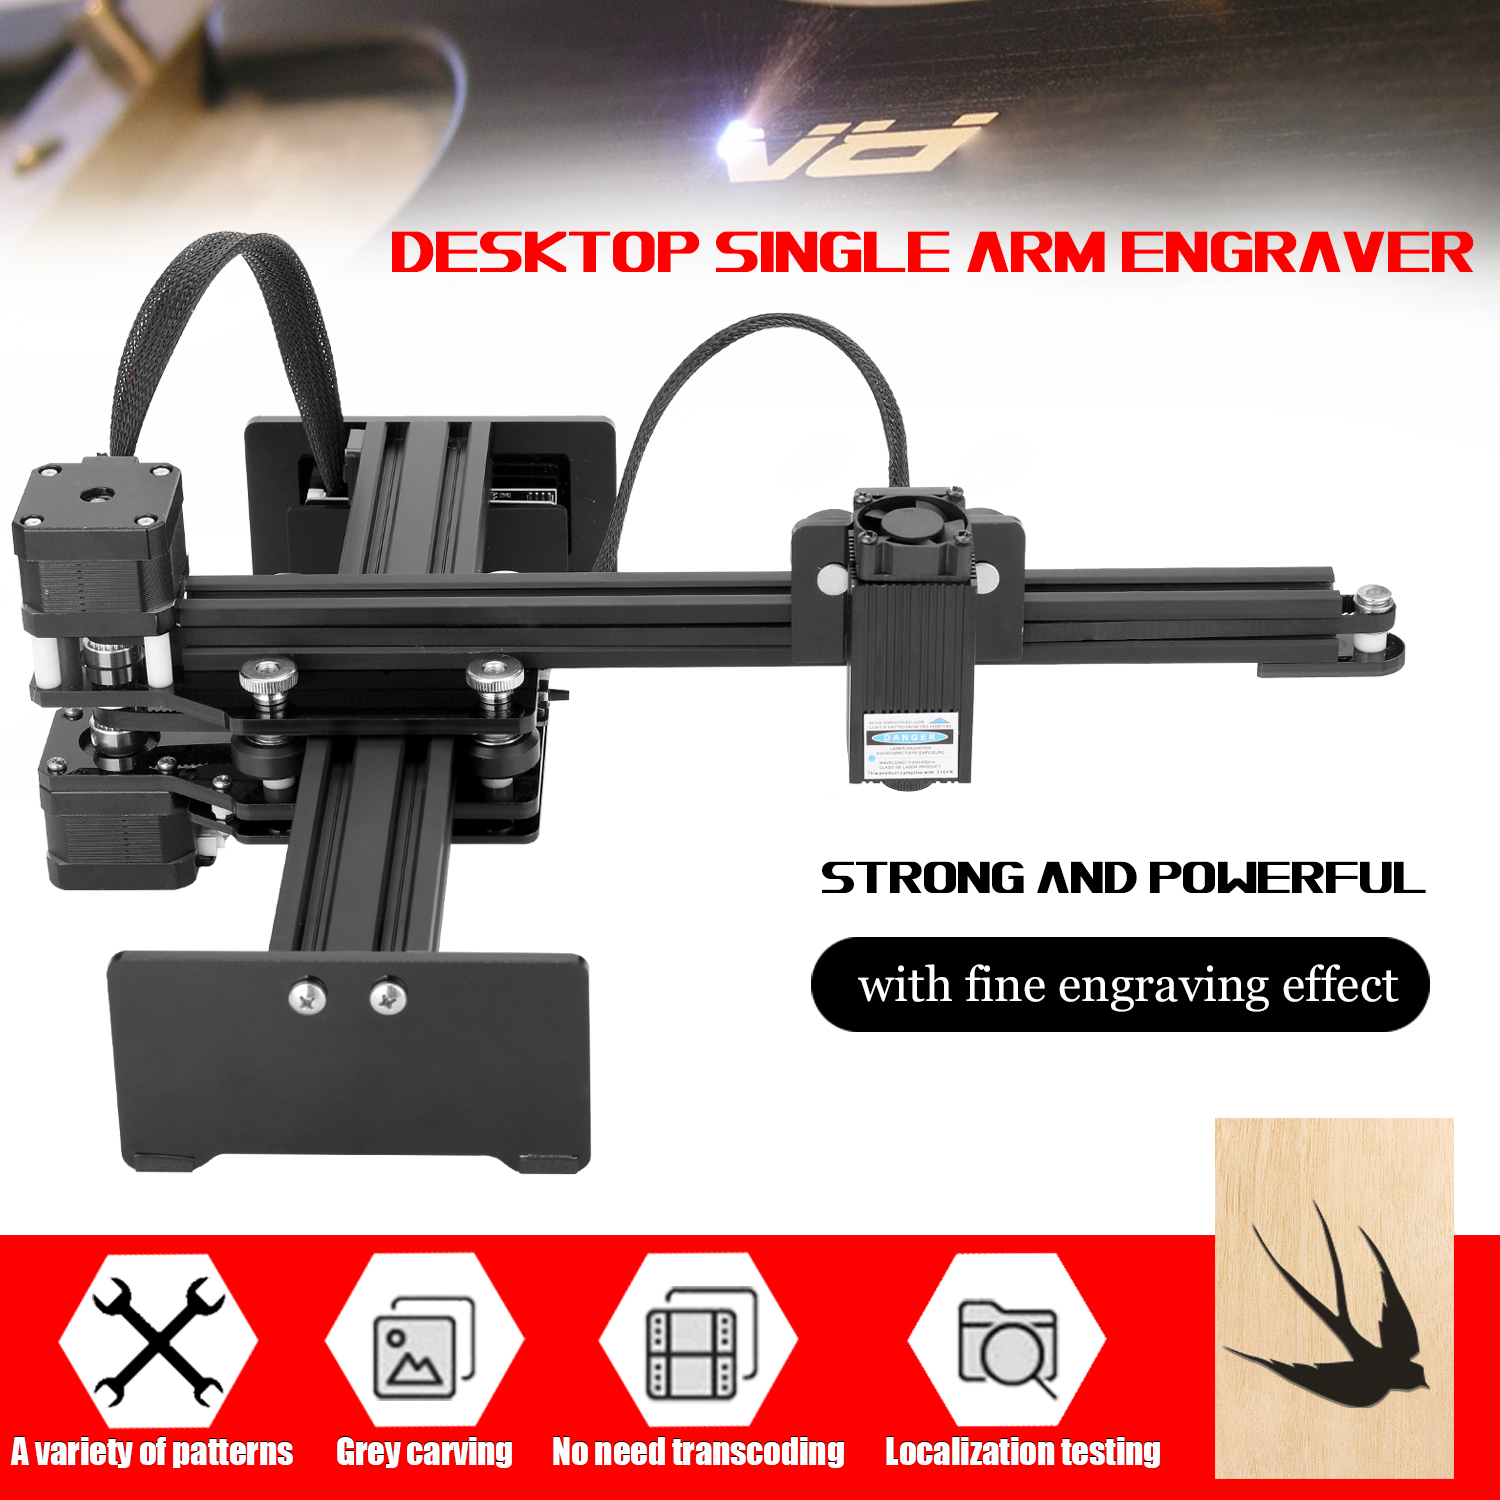 2.5W Small Laser Engraving Machine Desktop Single Arm Engraver Portable DIY Engraving Carving Machine Mini Carver EU / US Plug